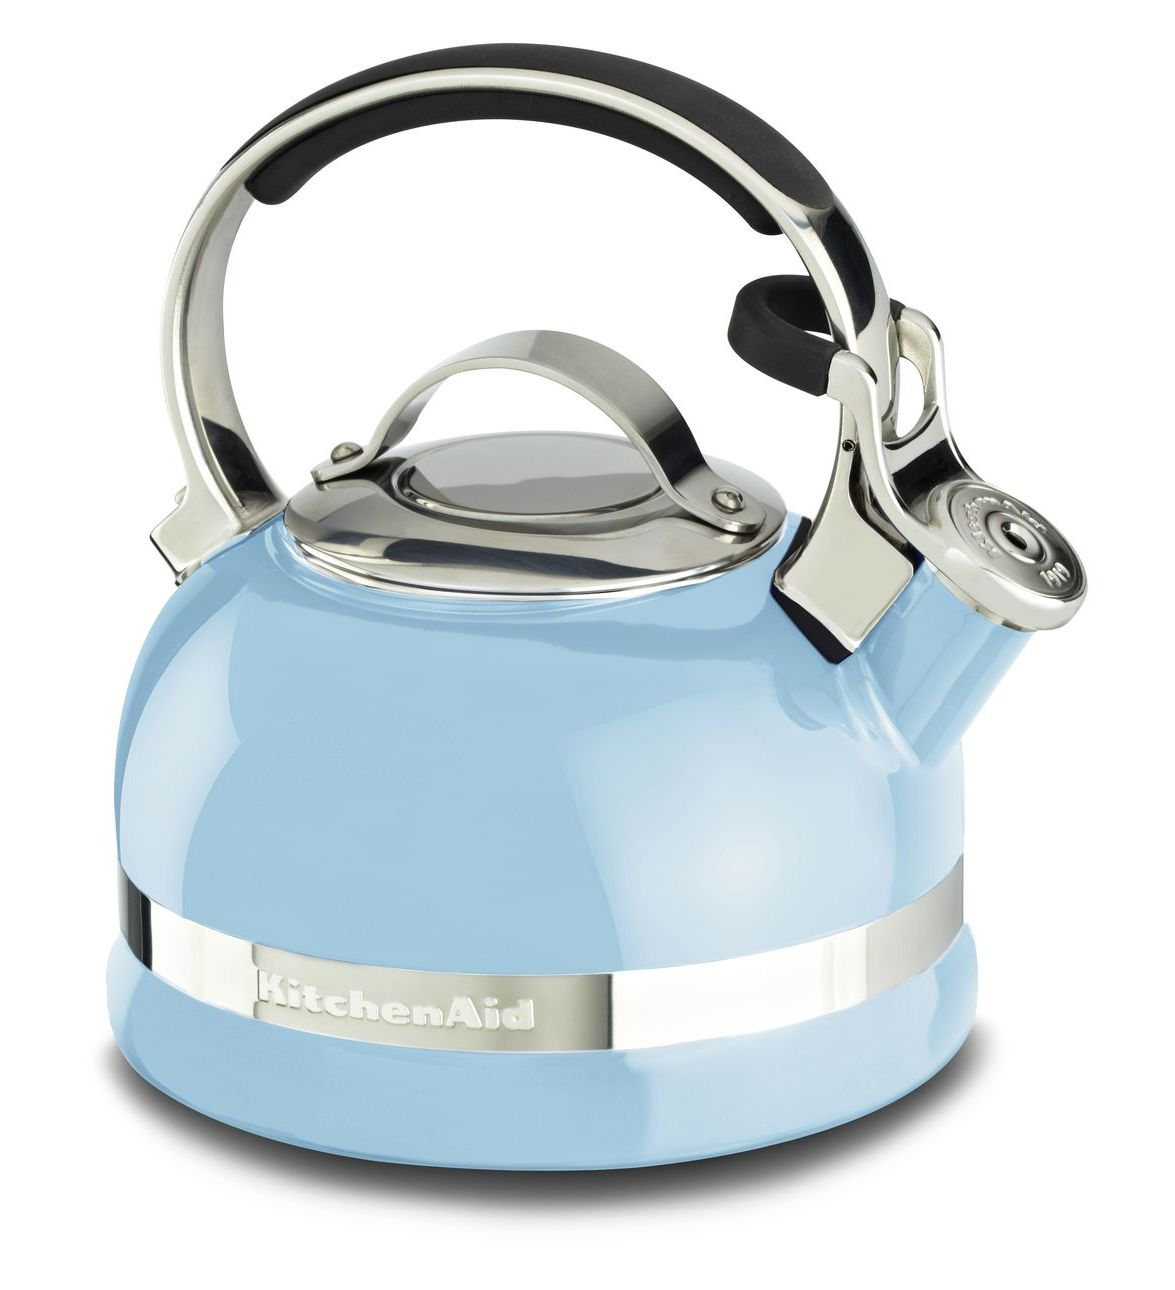 KitchenAid® 2.0-Quart Kettle with Full Handle and Trim Band